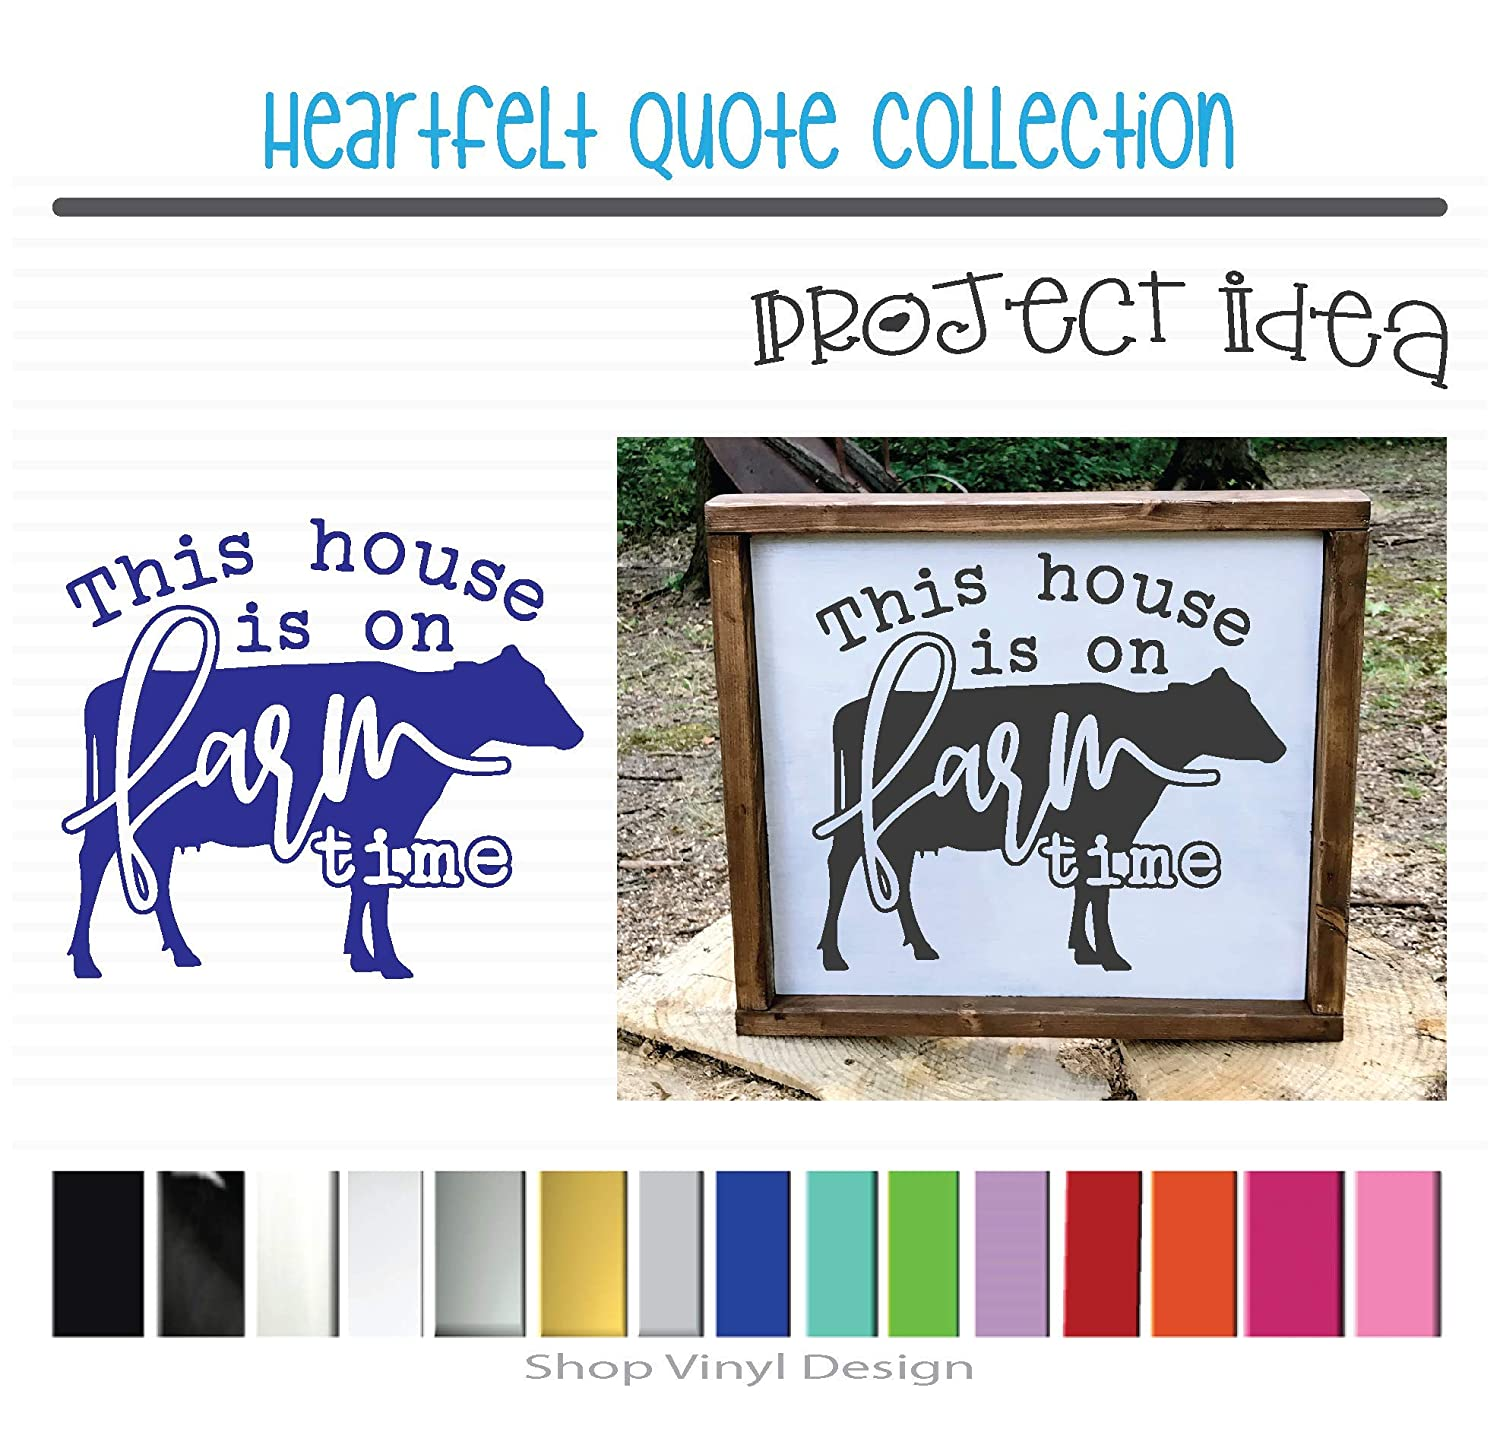 Vinyl Graphic Decal Sticker Can be Used for Vehicle Window Cooler Mirror Safe || High Quality Outdoor Rated Vinyl This House Is On Farm Time Sized for Farmhouse Canvas Metal or Framed Sign